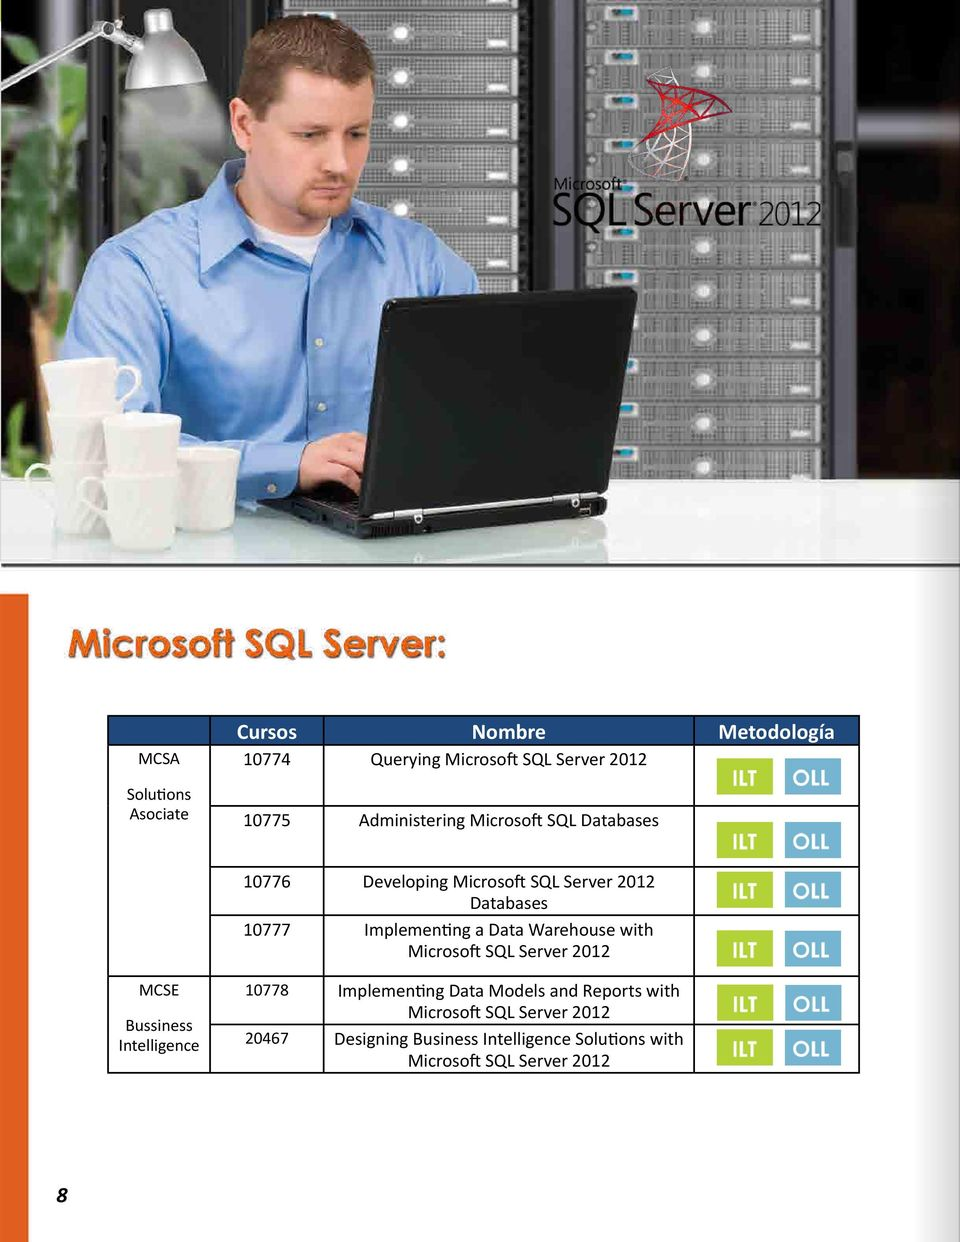 a Data Warehouse with Microsoft SQL Server 2012 MCSE Bussiness Intelligence 10778 Implementing Data Models